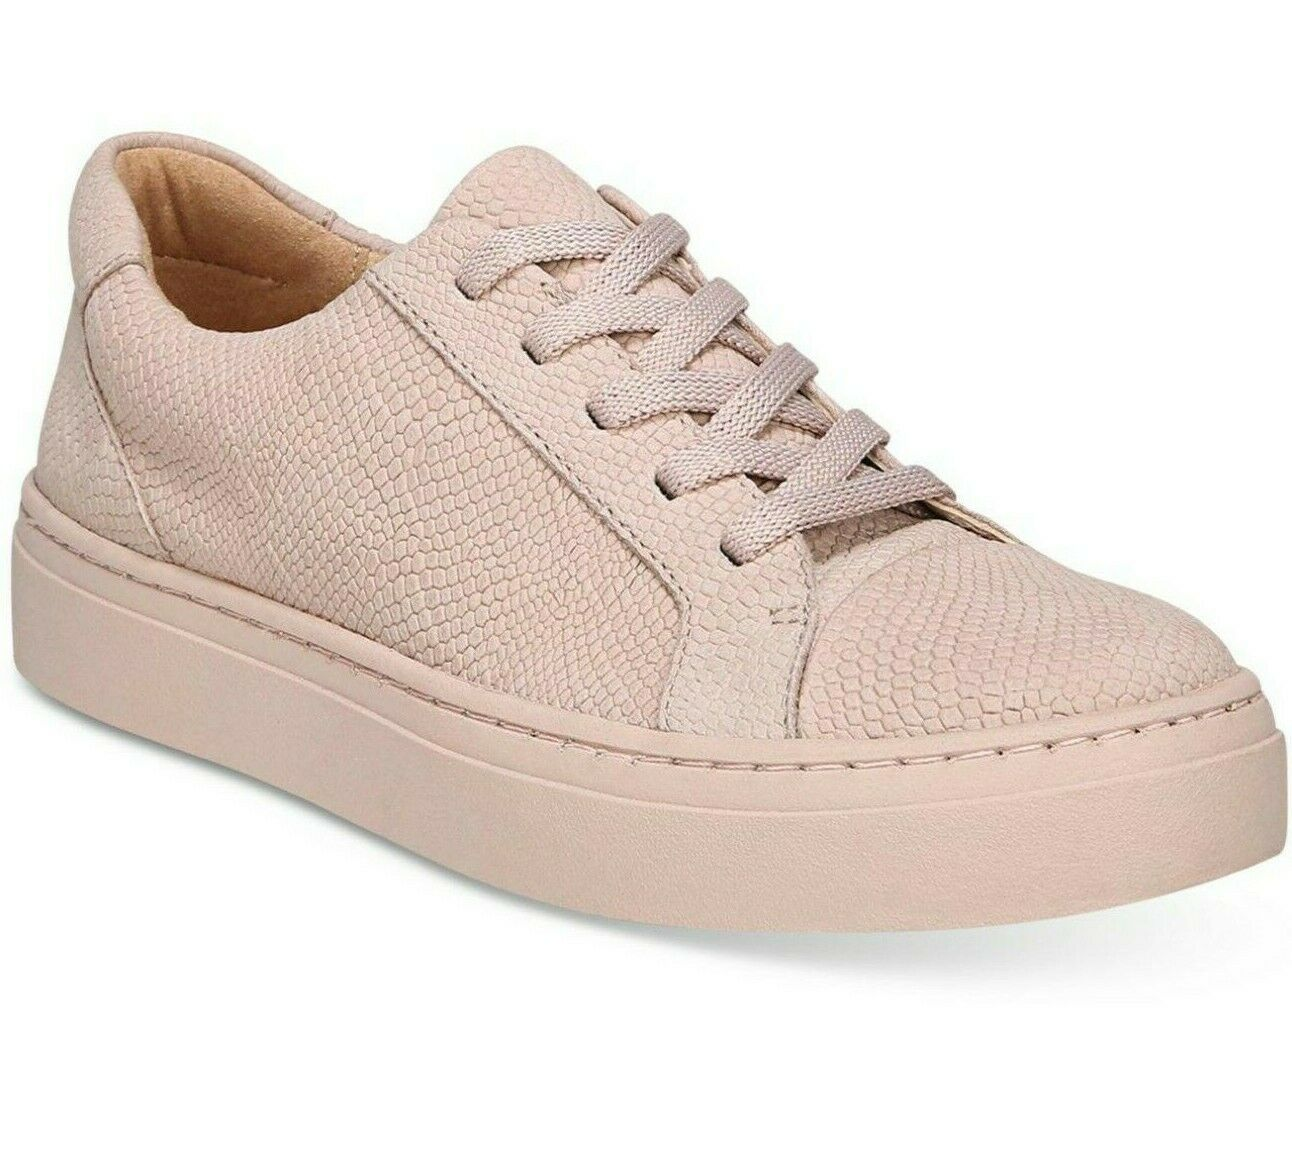 Naturalizer Cairo Lace Up Fashion SNEAKER  LEATHER Size 8.5 W PINK